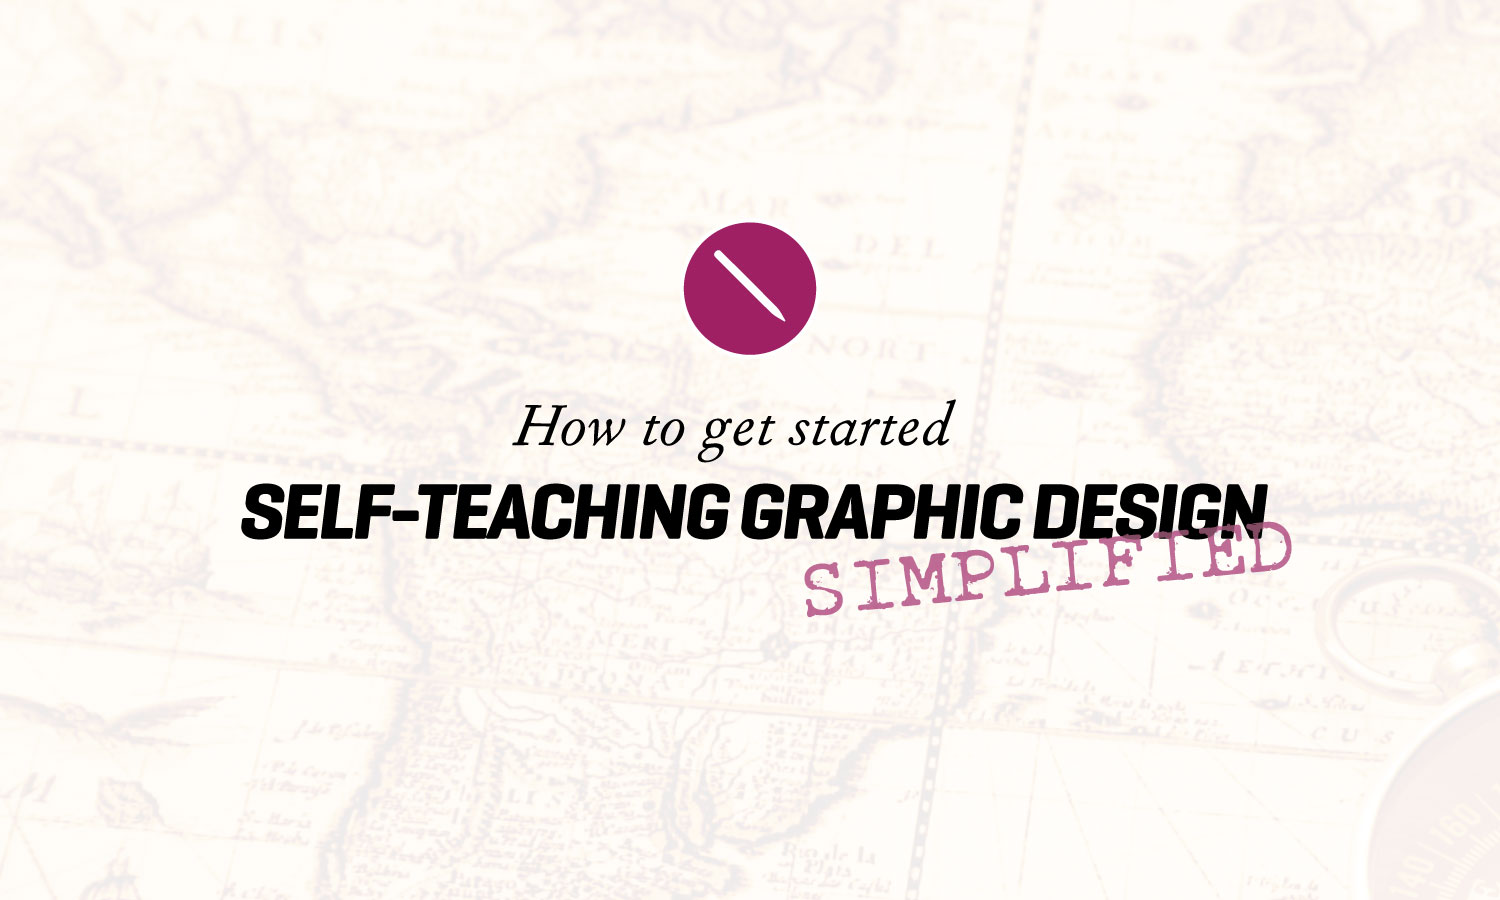 How to Get Started Self Teaching Graphic Design - Simplified